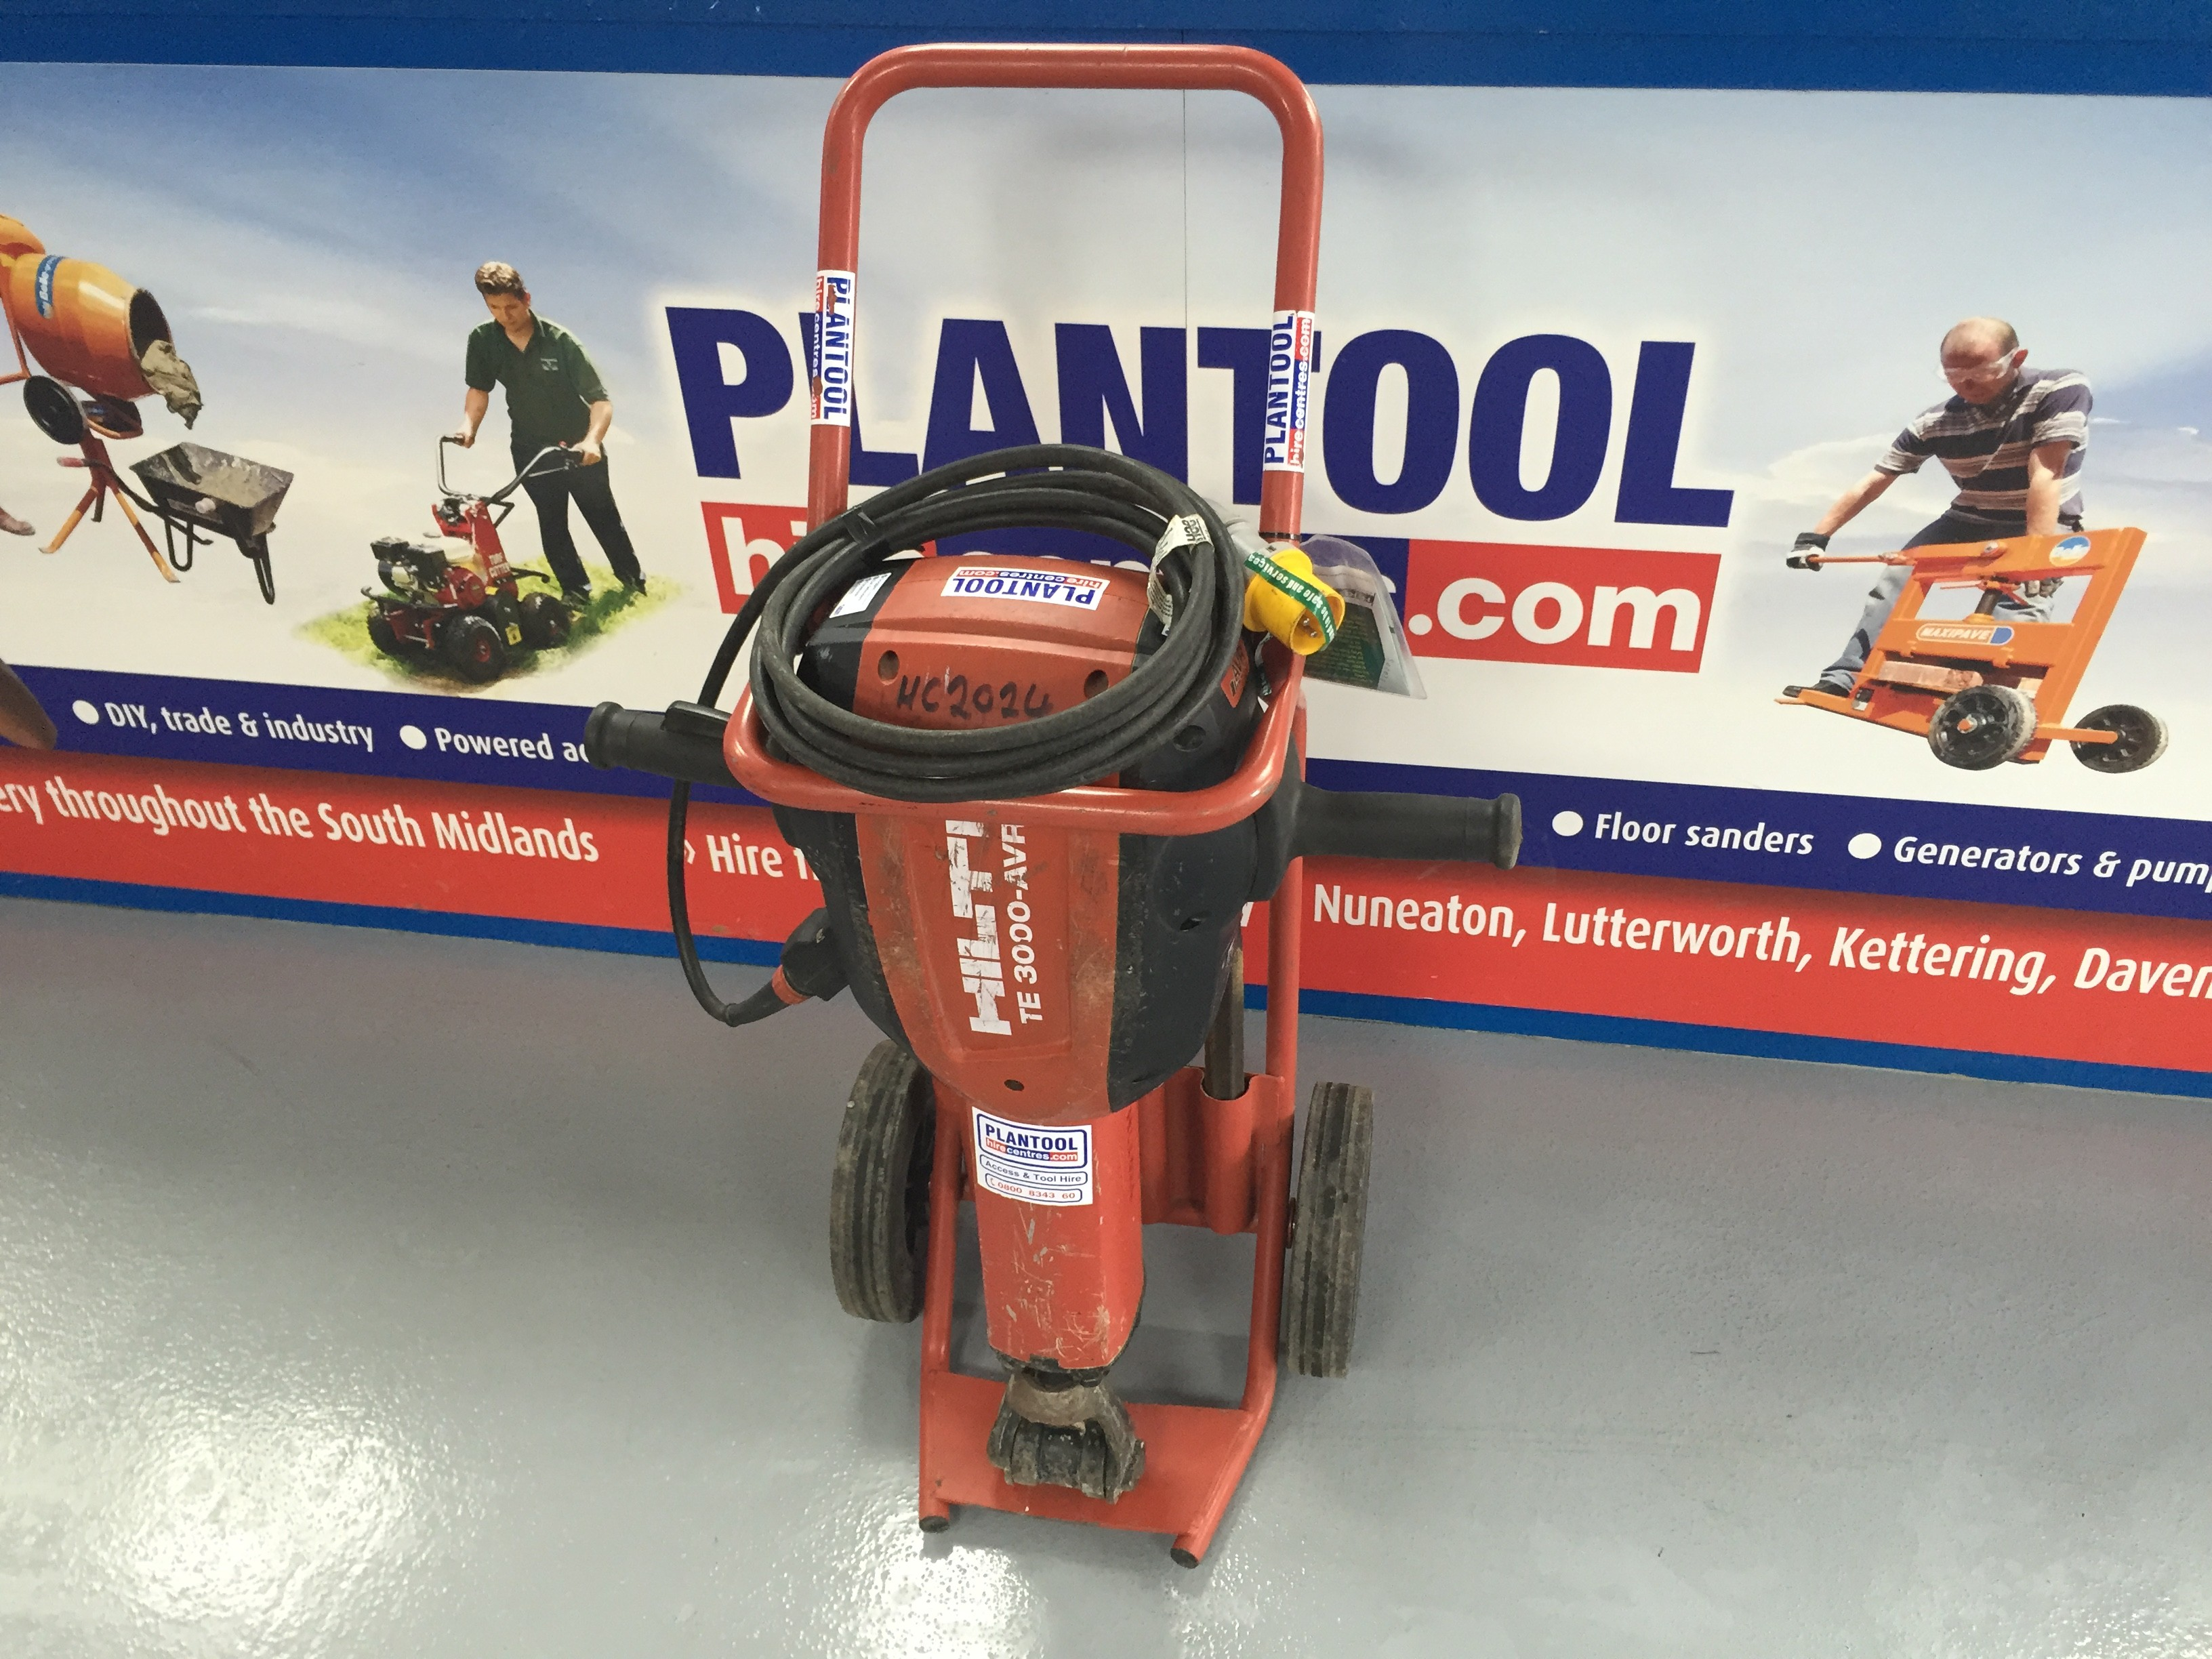 Strongboy wall support prop for hire best at hire - Breaker Electric Road Hilti Te3000avr At Plantool Hire Centres